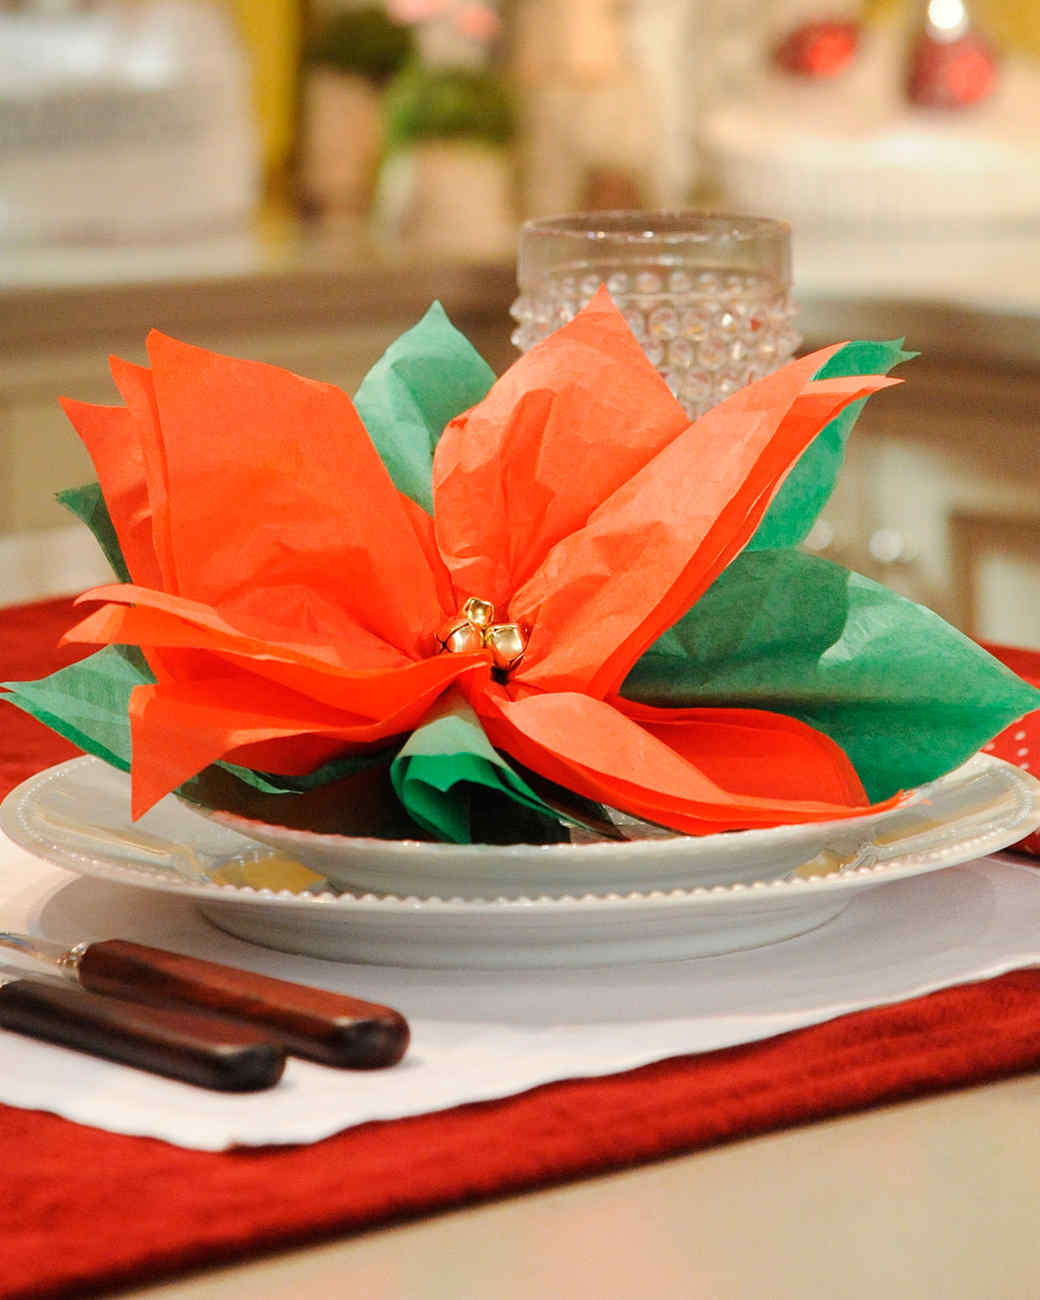 How To Perfect Your Christmas Table Decorations  CnNzLTAtNUIyZmRh: Holiday Table Decorations From ''The Martha Stewart Show